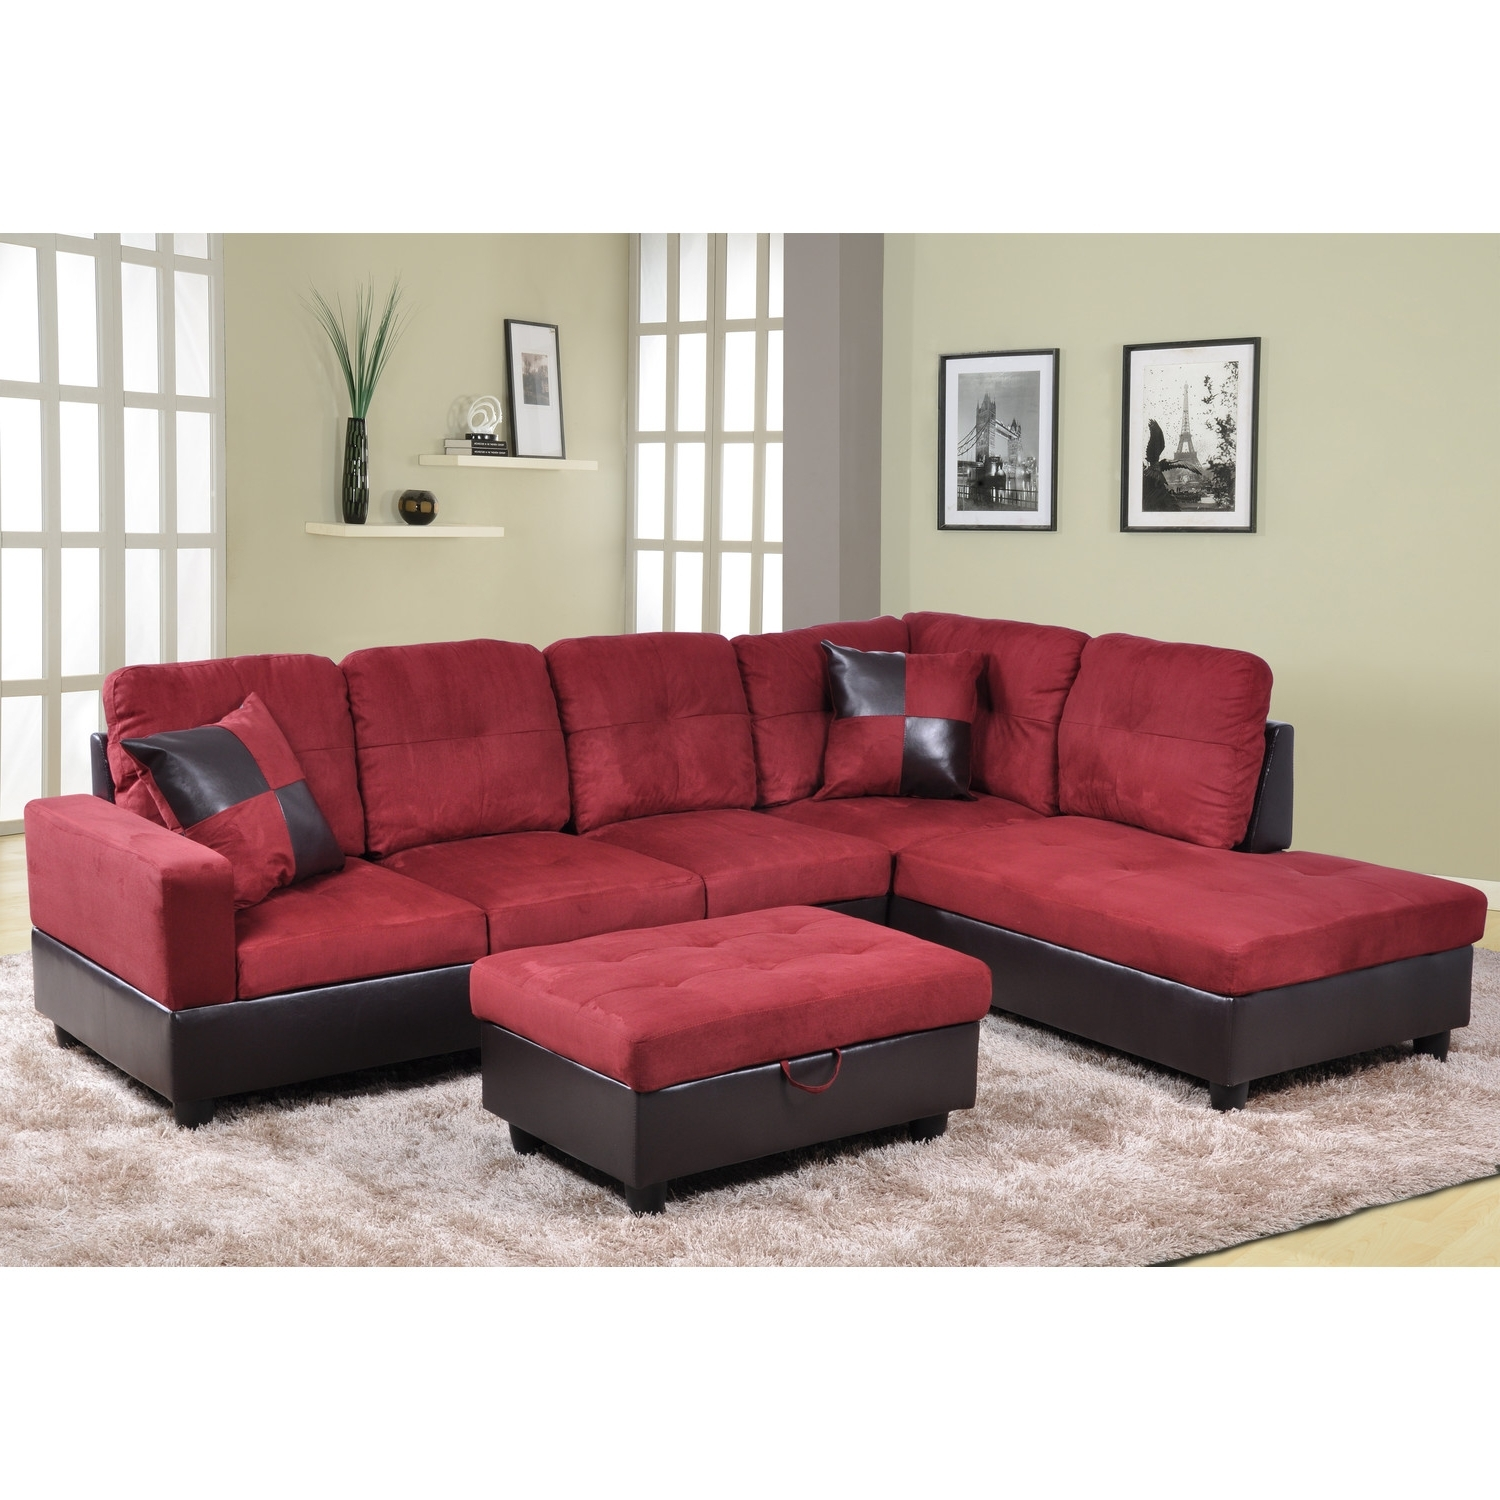 Sectional Sofas Under 300 Intended For Most Popular Nice Cheap Sofas For Sale About Furniture Sophisticated Designs Of (View 14 of 20)